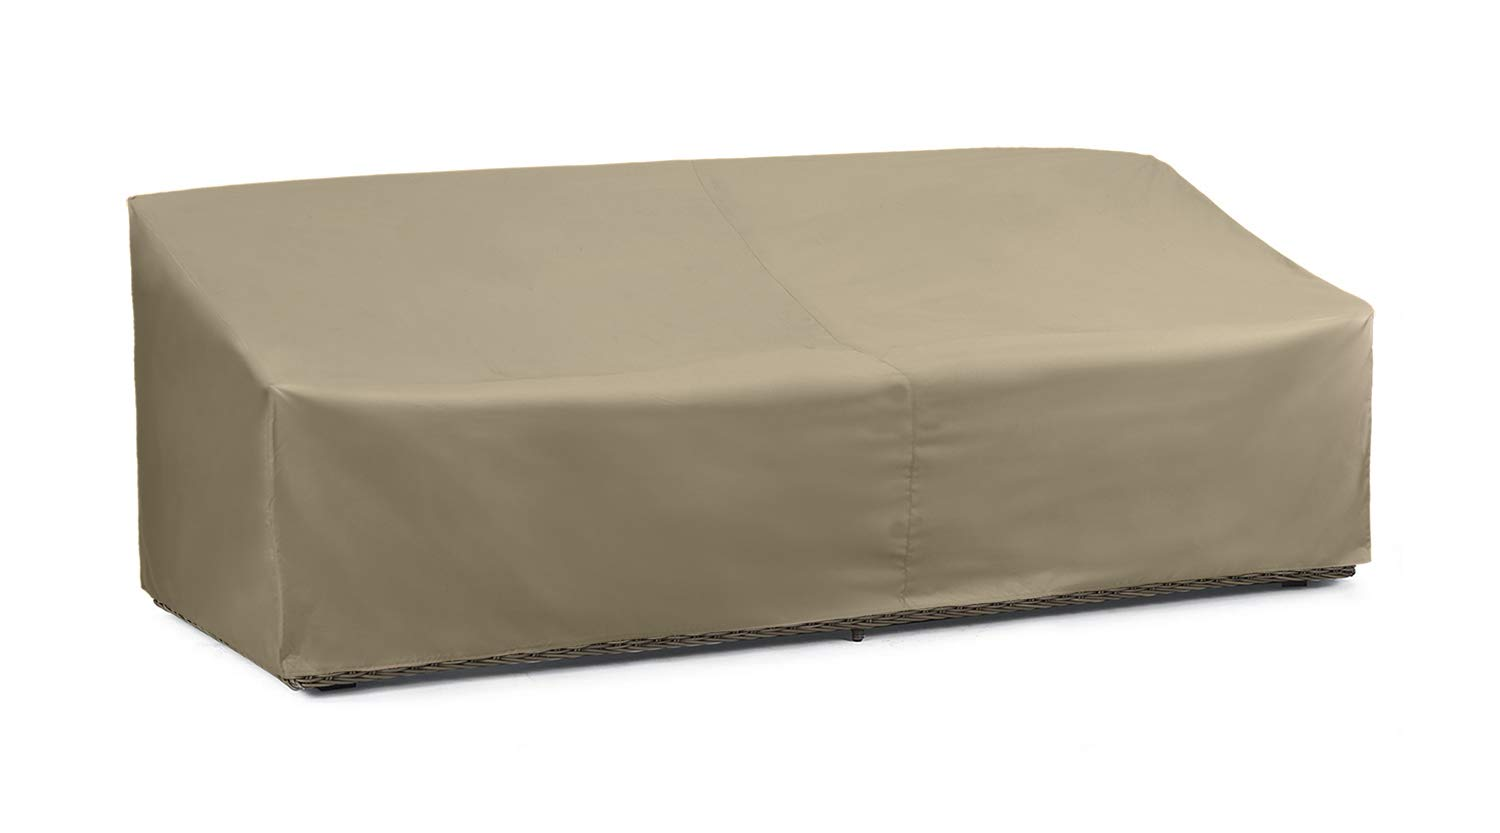 SunPatio Outdoor Oversized Sofa Cover, Lightweight, Water Resistant, Helpful Air Vents, All Weather Protection, 93.5'' L x 45'' W x 39'' H, Neutral Taupe by SunPatio